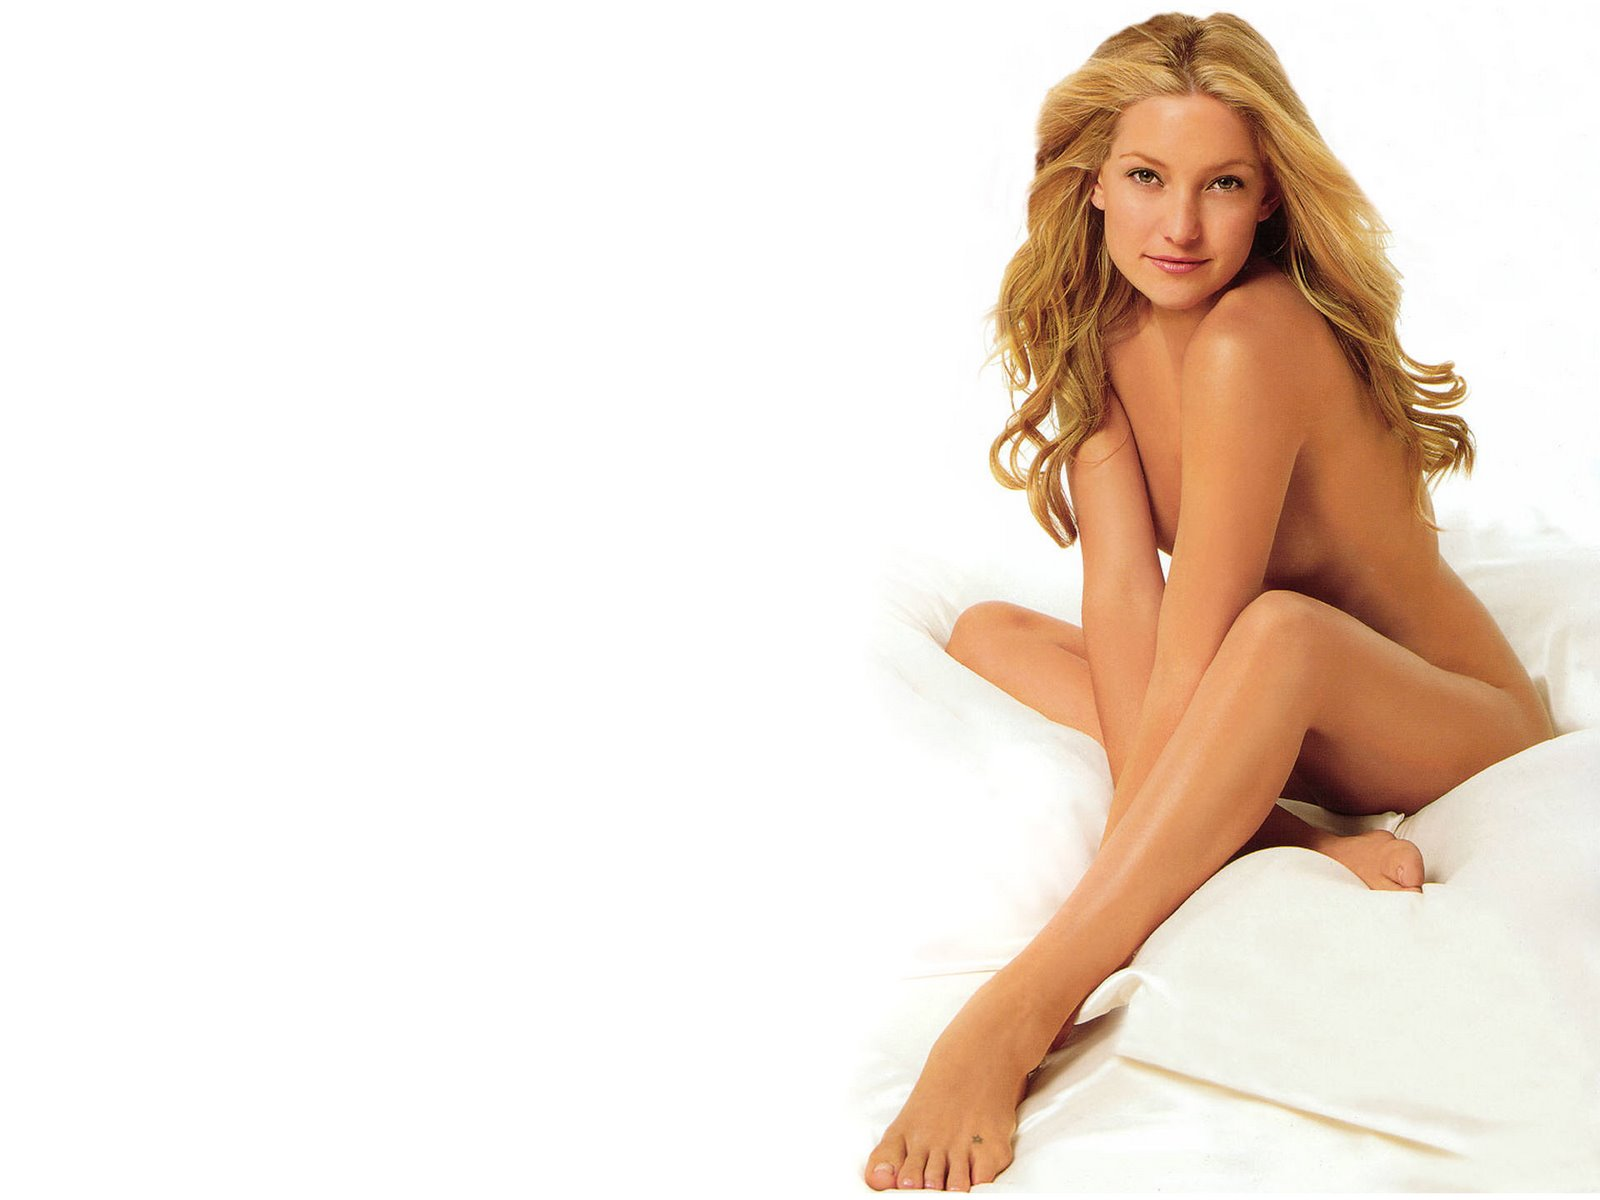 nude_celebrity_smoke_kate_hudson_6.jpg